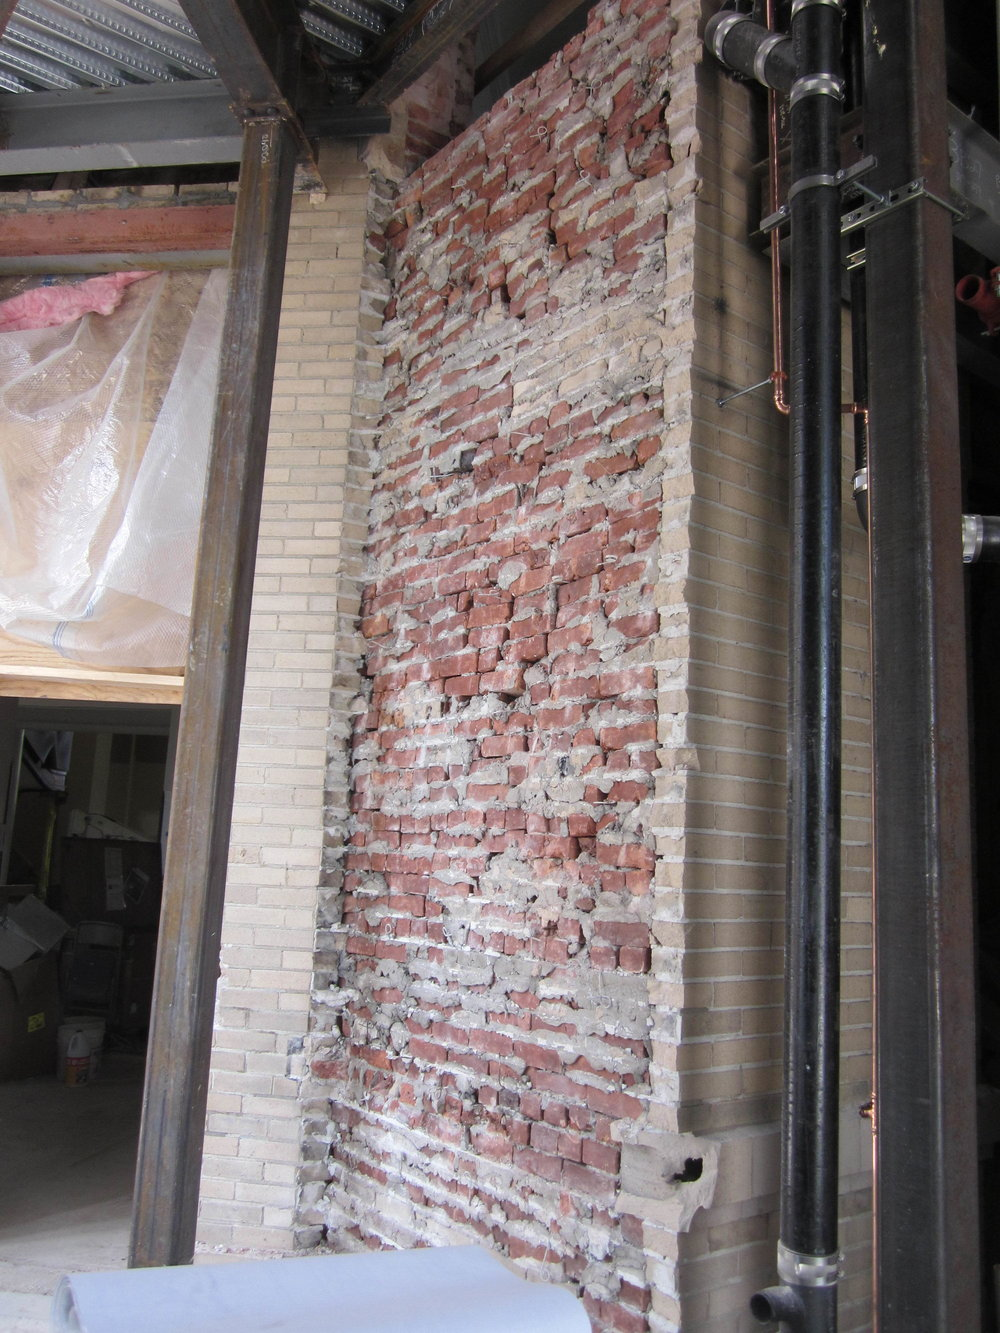 Exposed historic brick inside the exterior brick